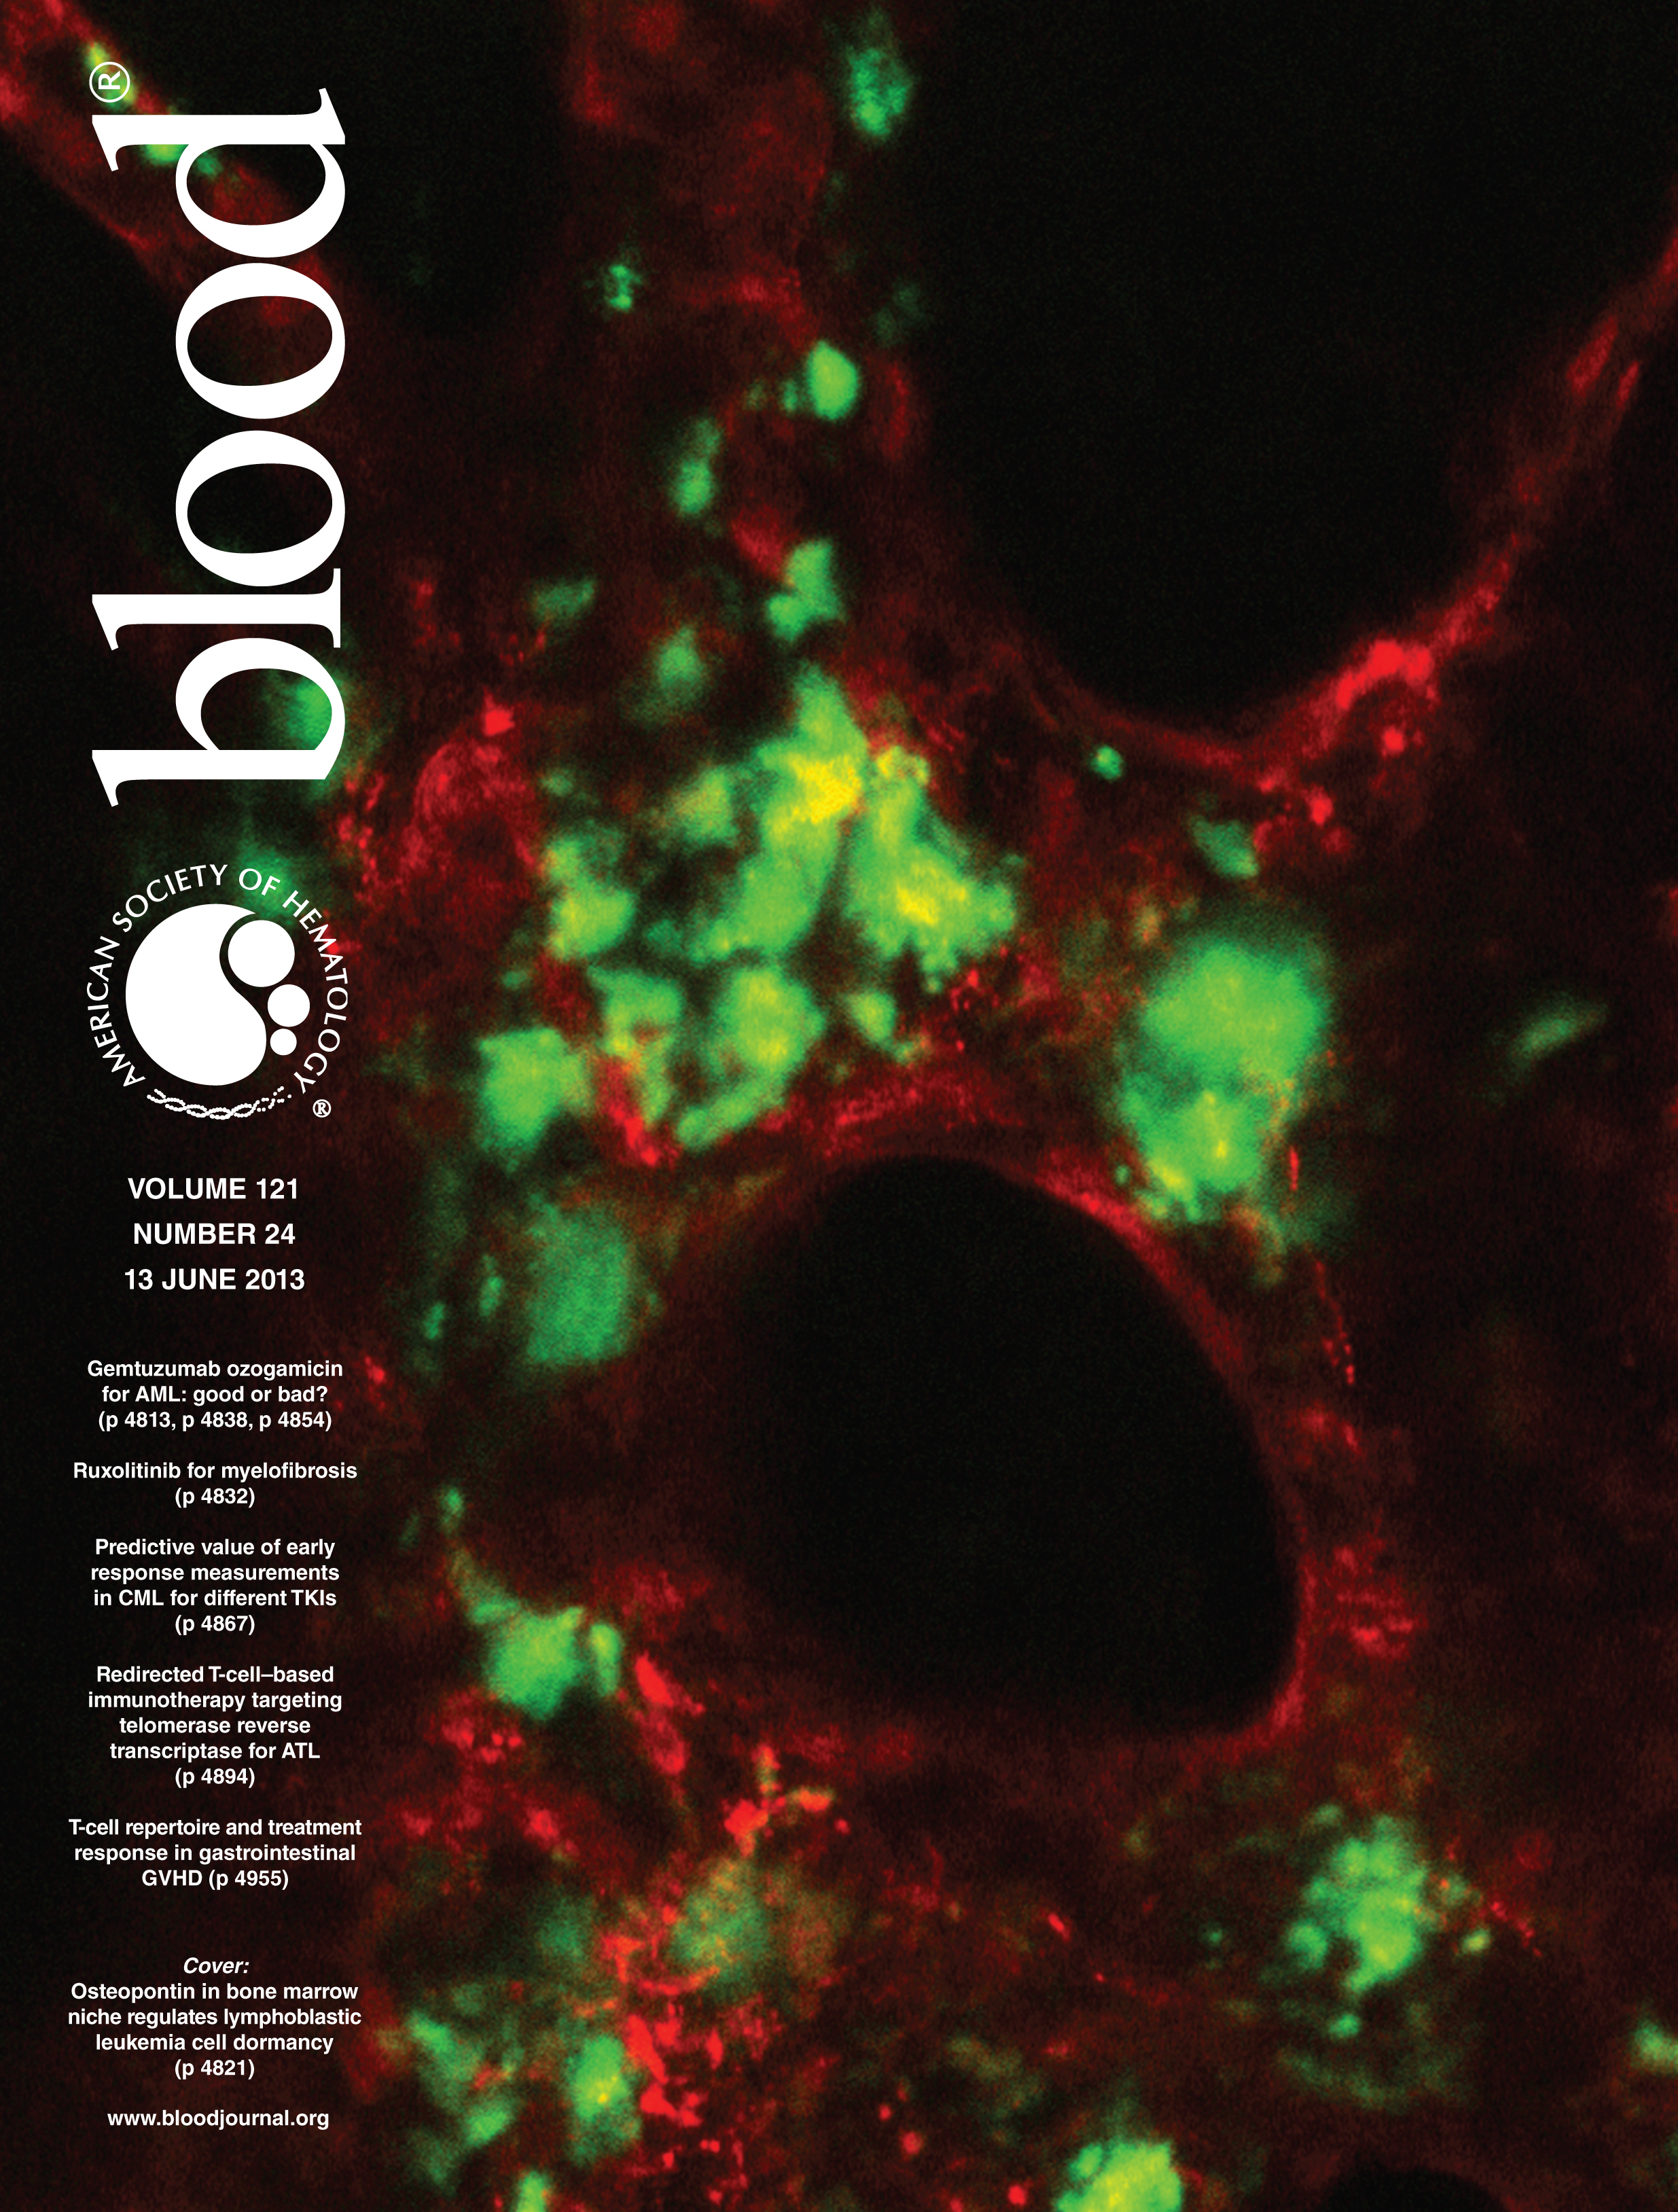 Our work was featured on the cover of Blood!